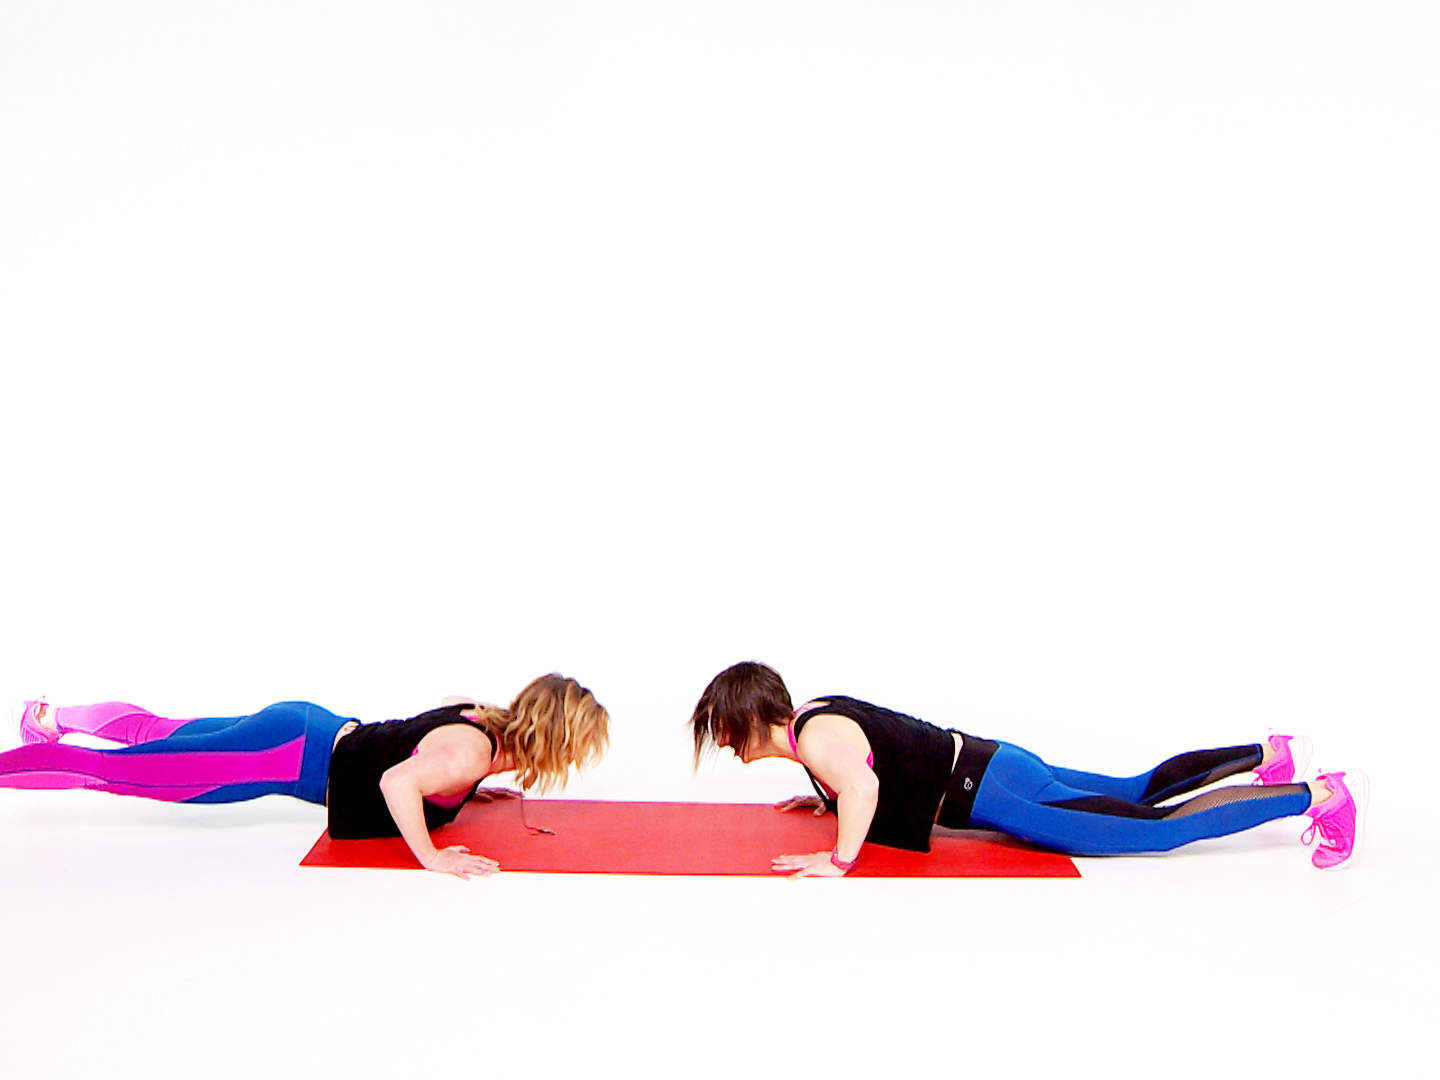 brave-body-projects-25-minute-full-body-workout-video